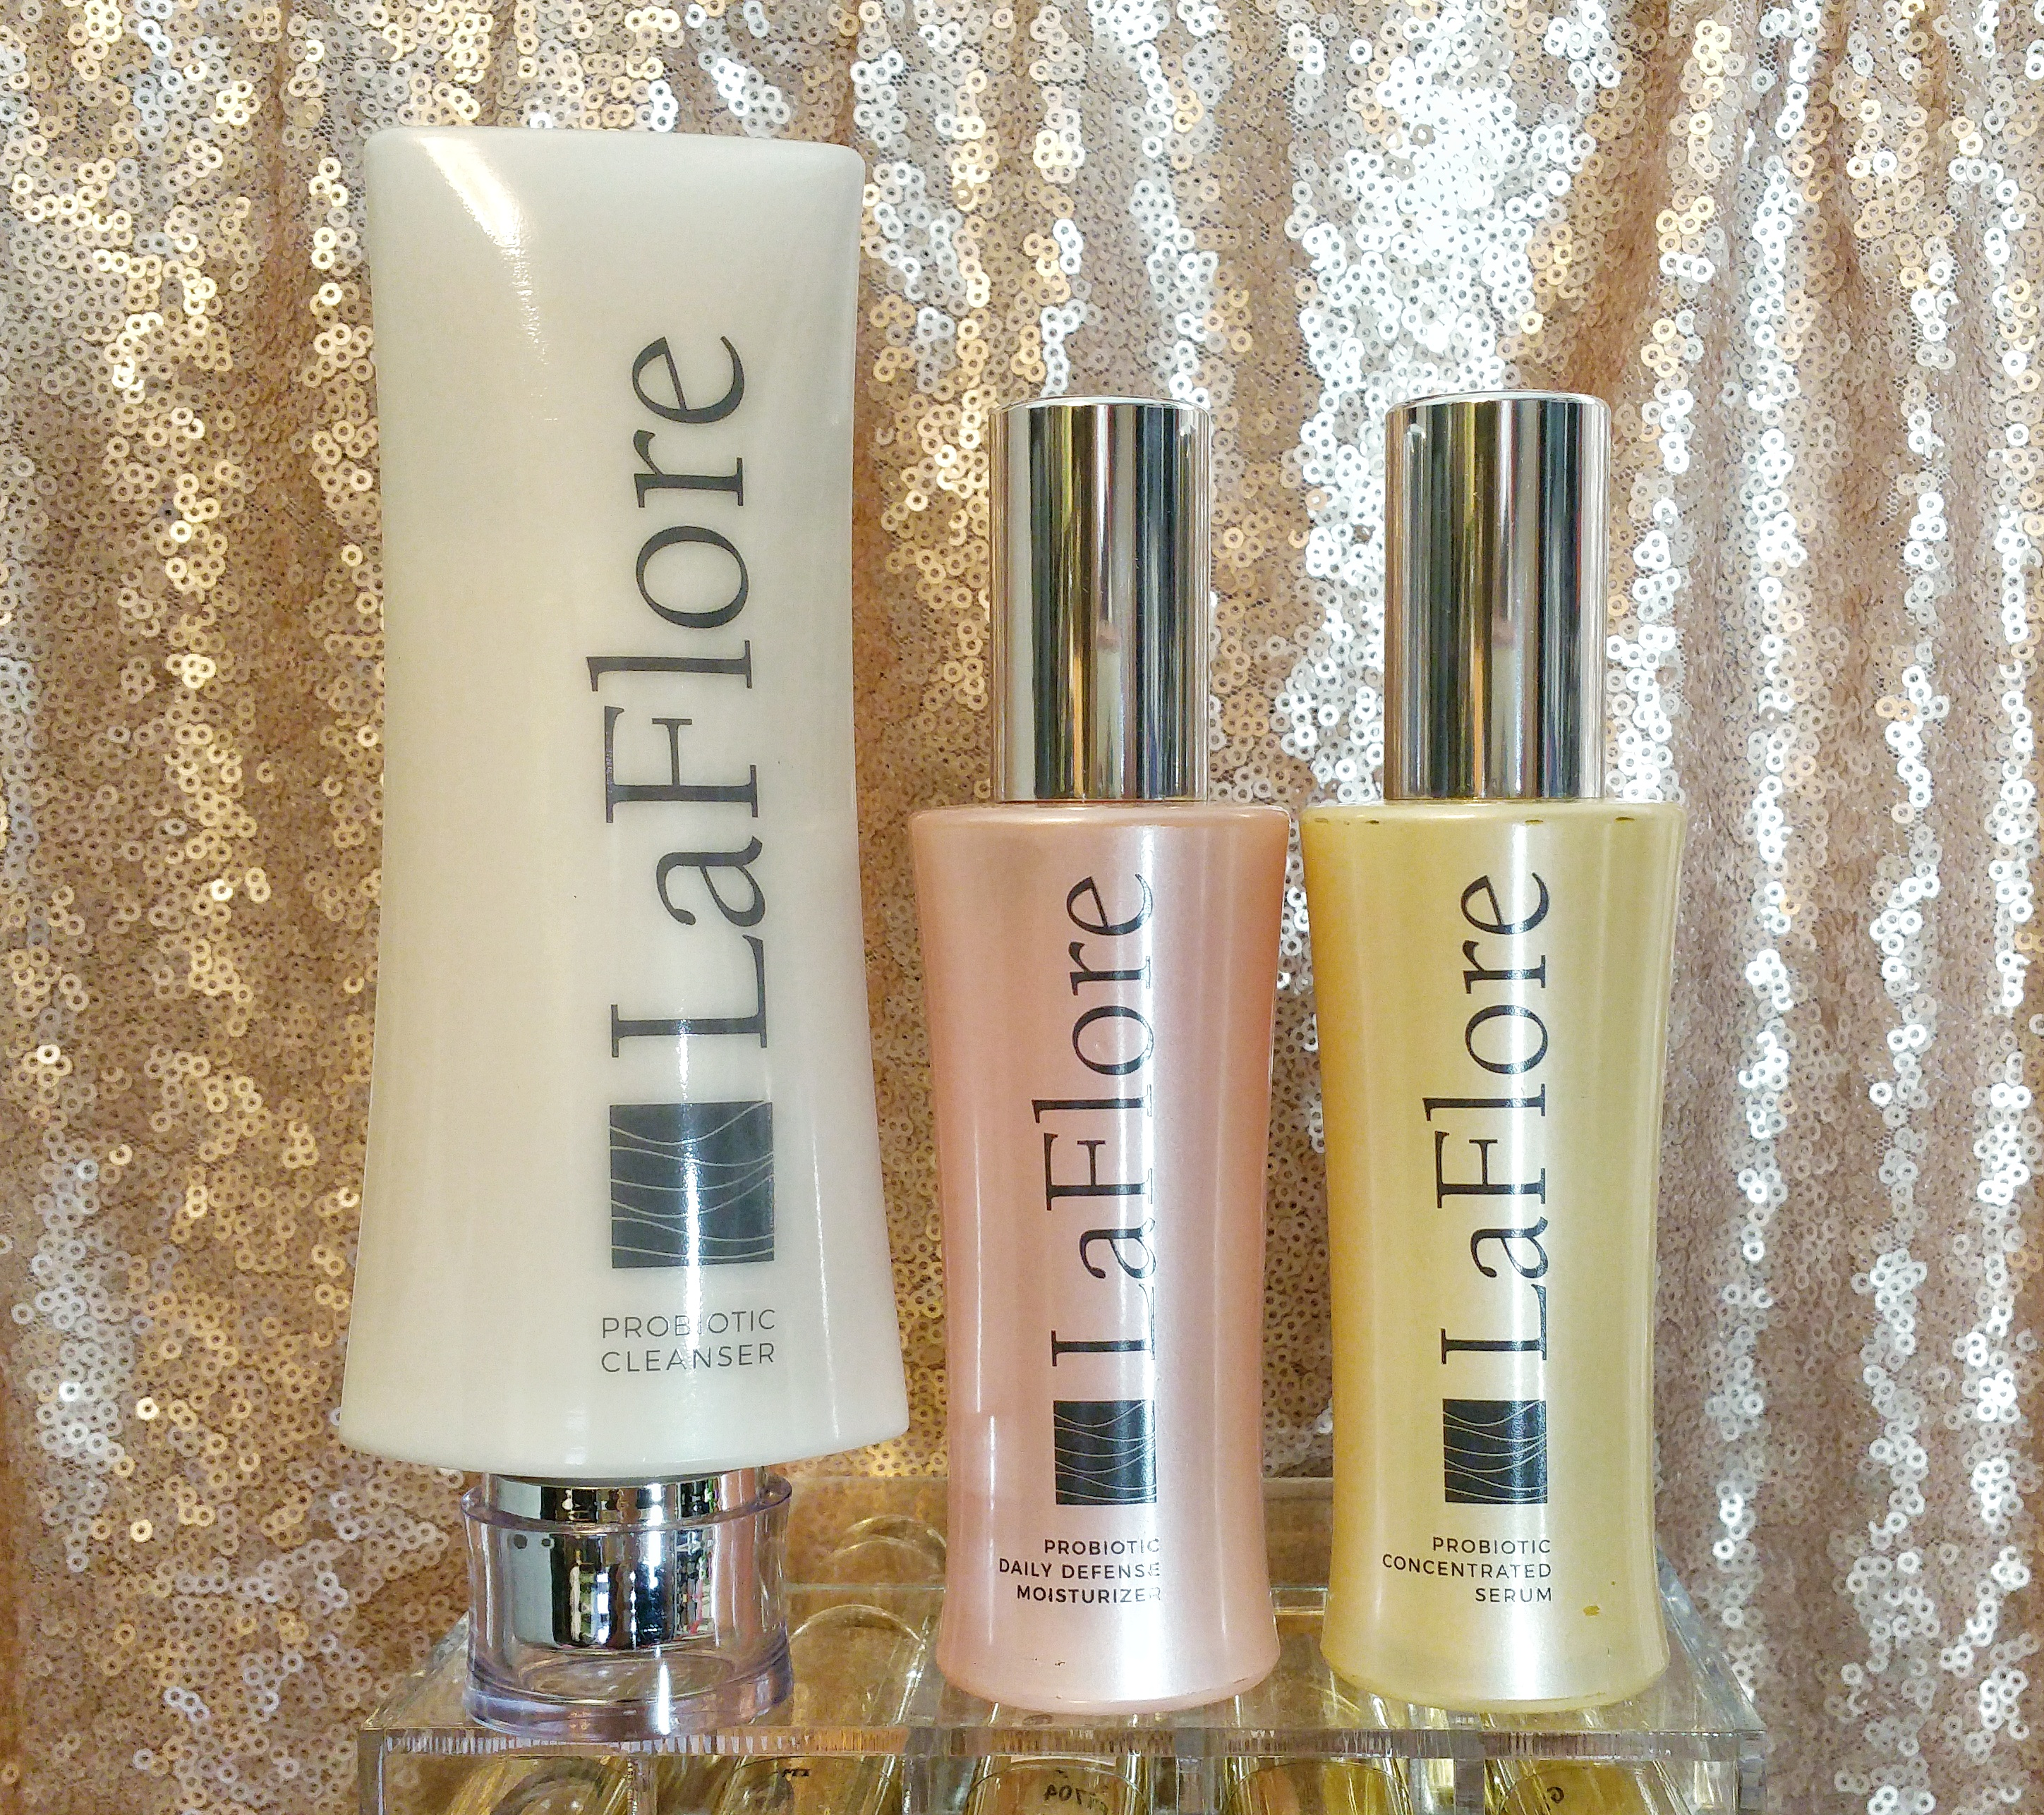 laflore skincare, skin care, skincare, review, beauty, makeup, probiotic skincare, probiotic skin care, product review, skin care review,